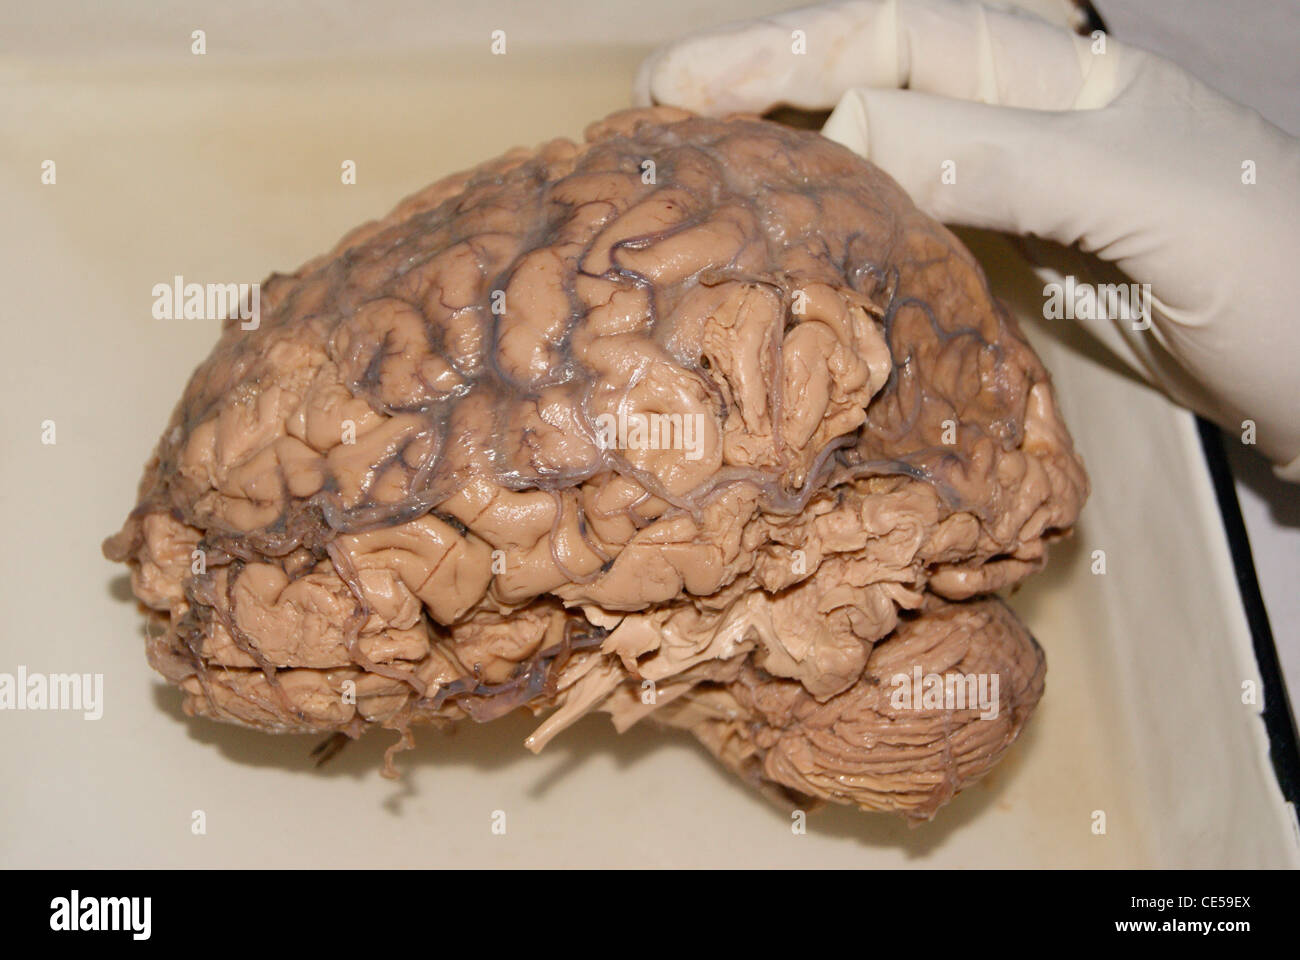 Original Human brain examining with hand (using gloves) by doctors. - Stock Image